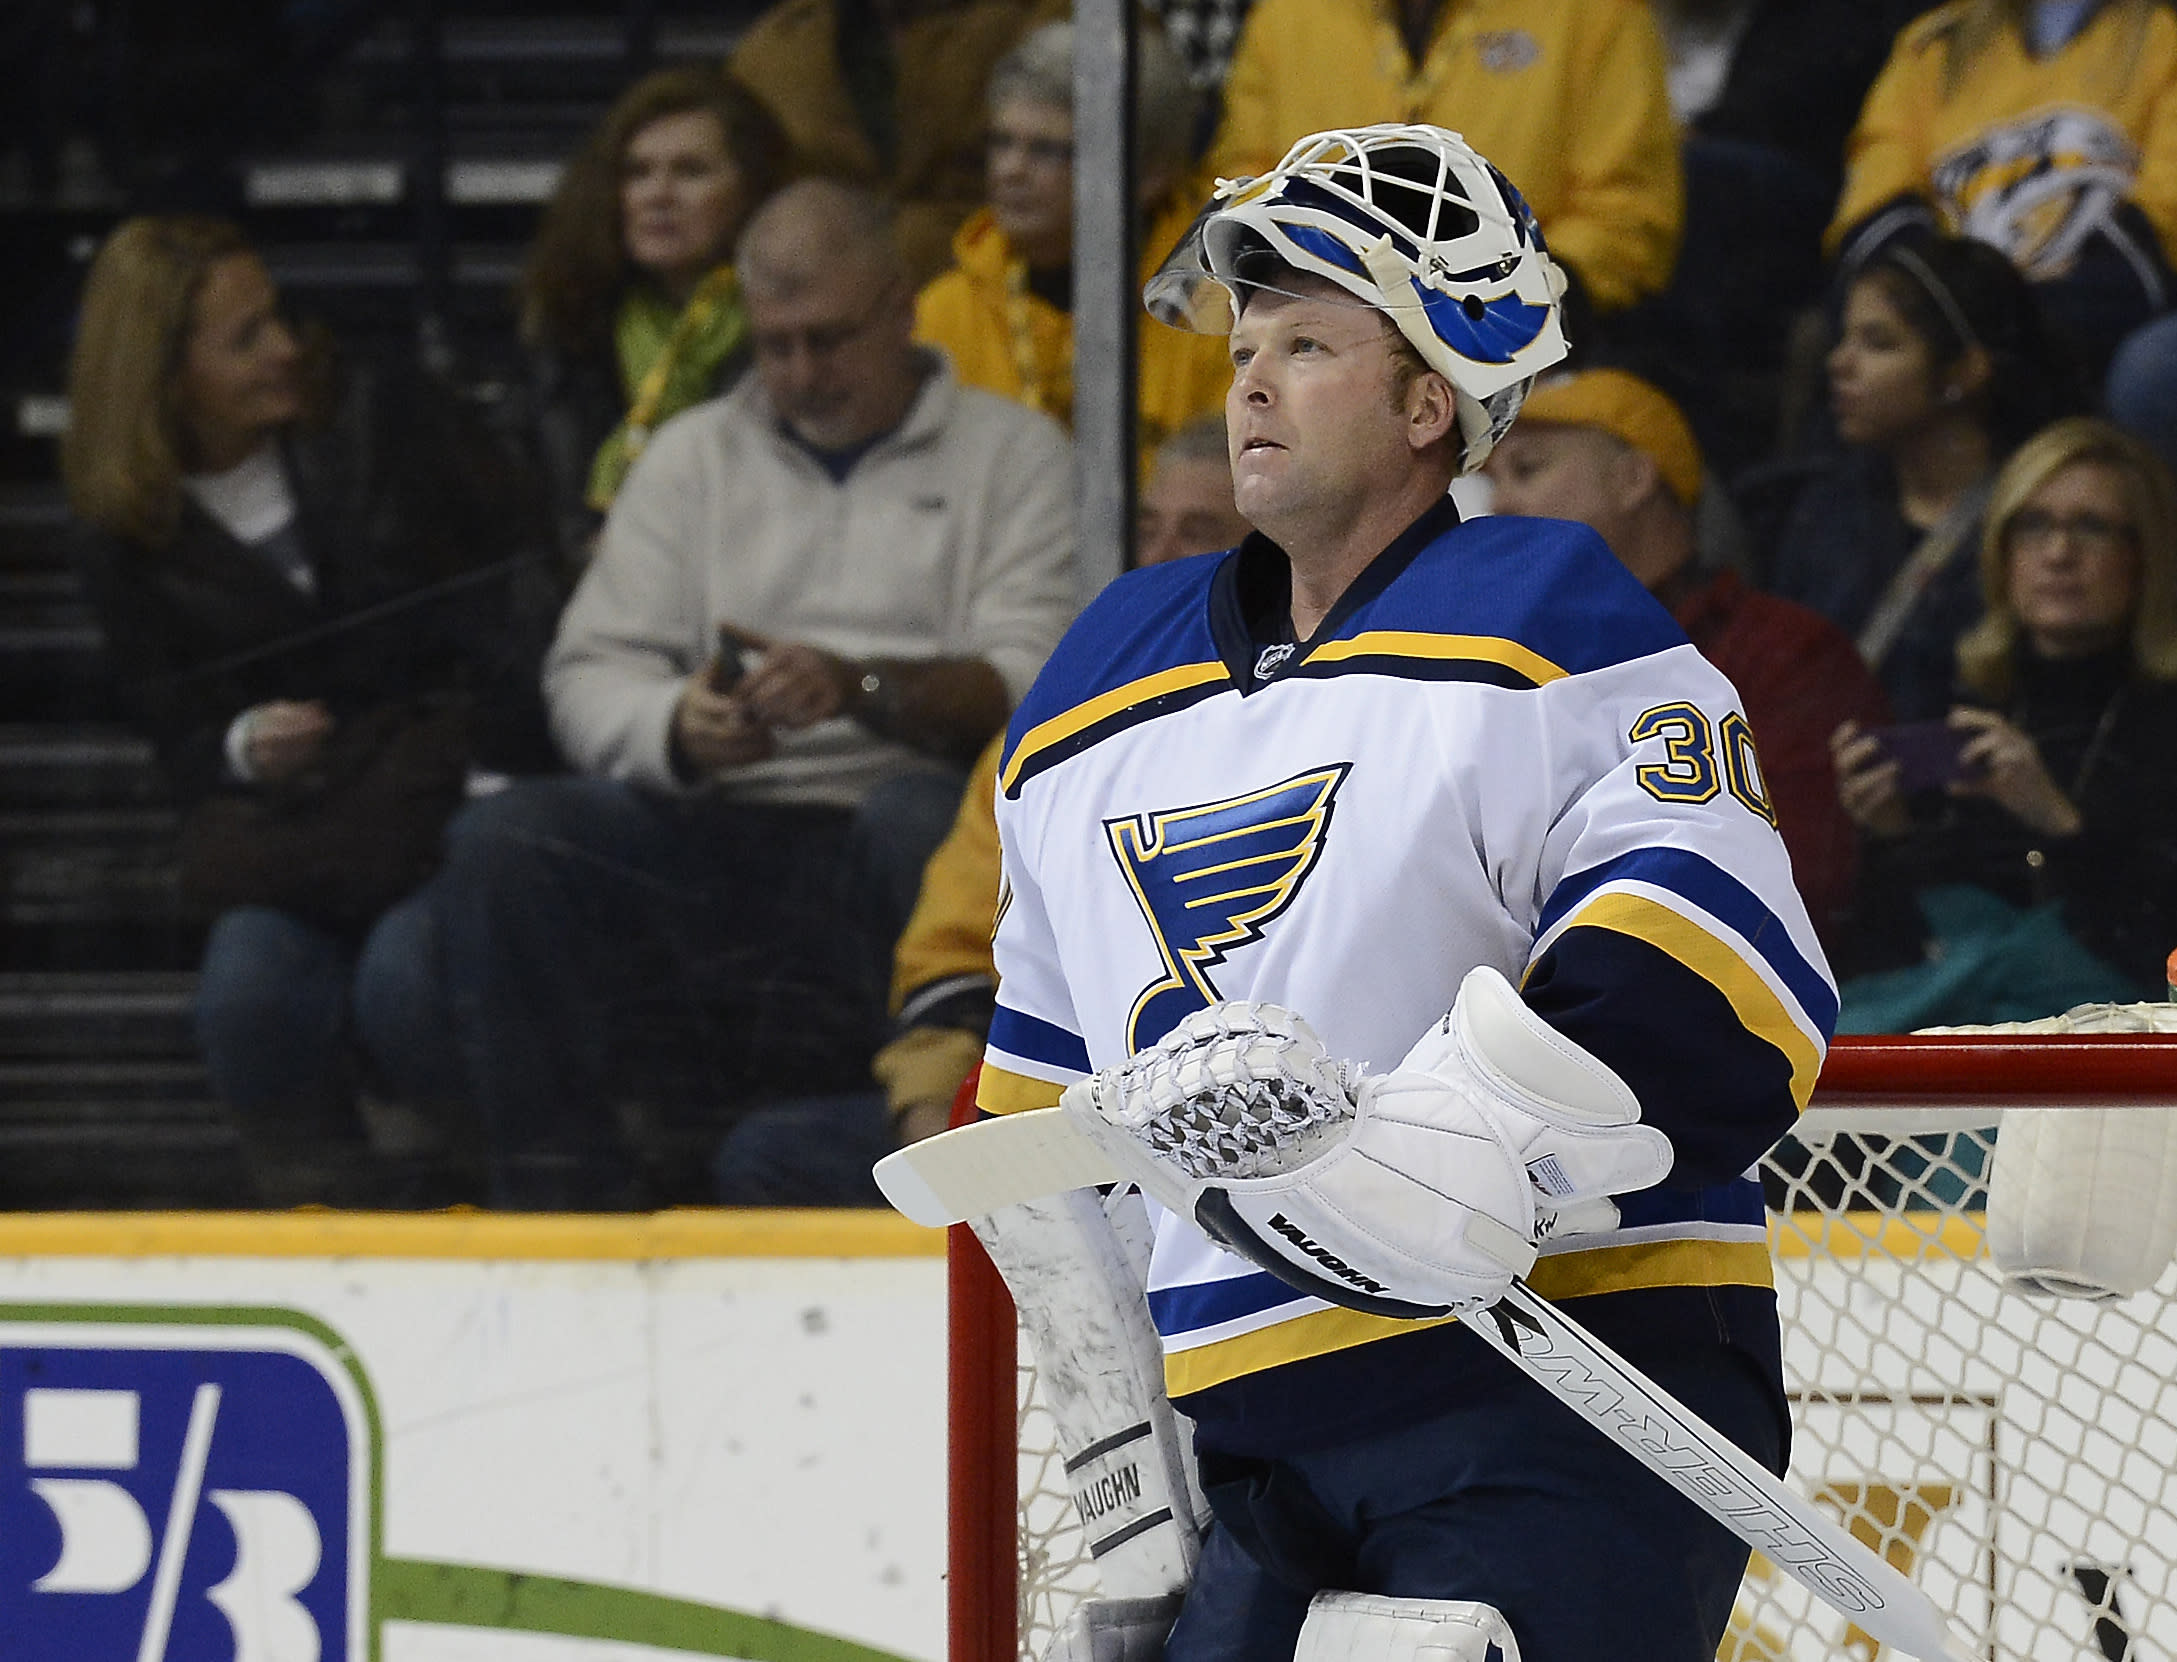 Brodeur to retire, join St. Louis Blues front office